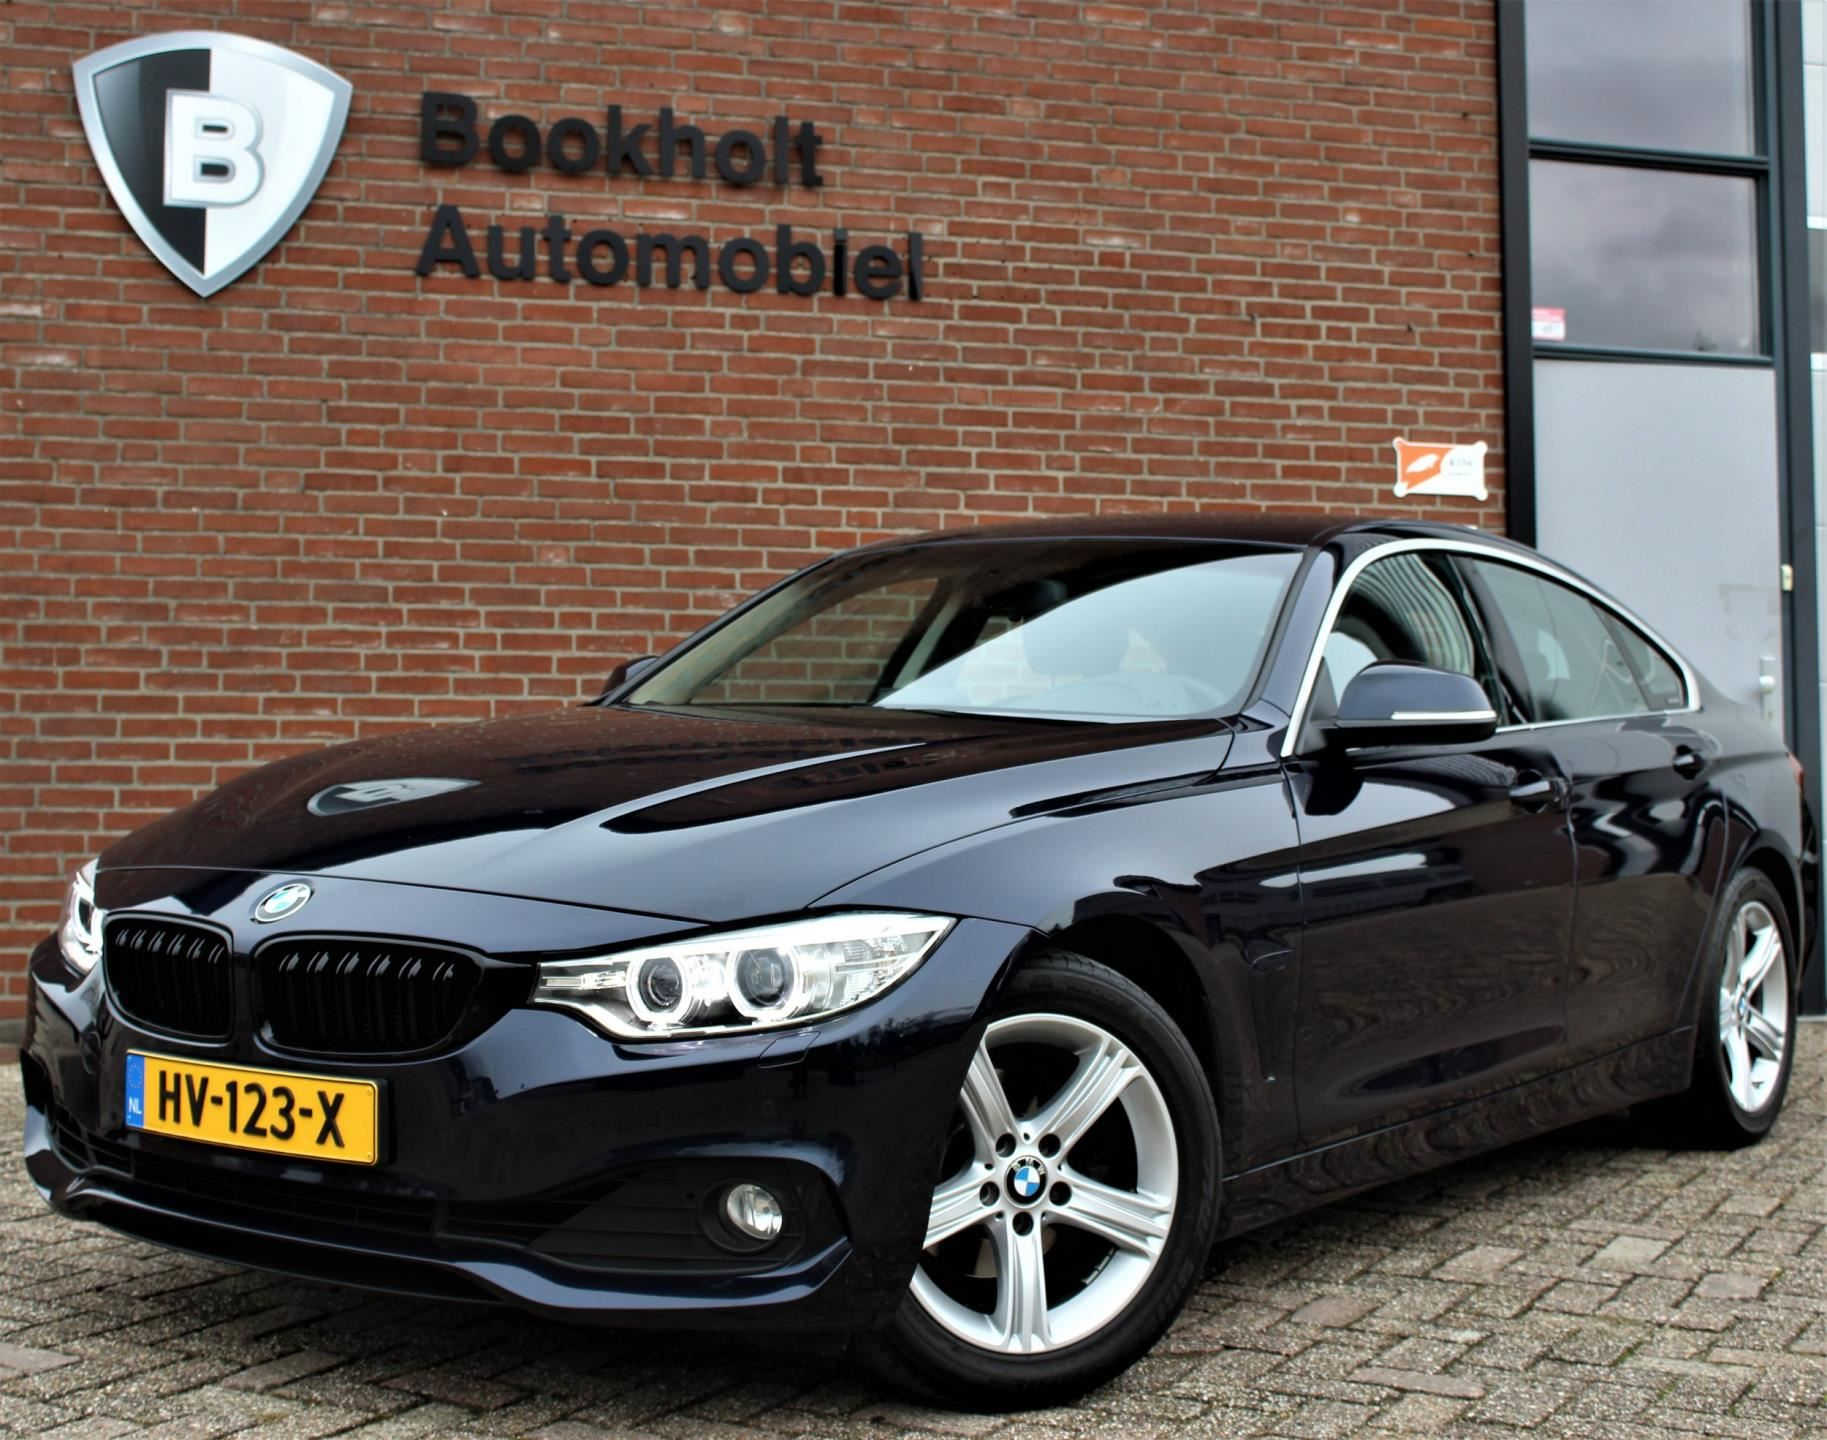 BMW 4-serie Gran Coupé occasion - Bookholt Automobiel